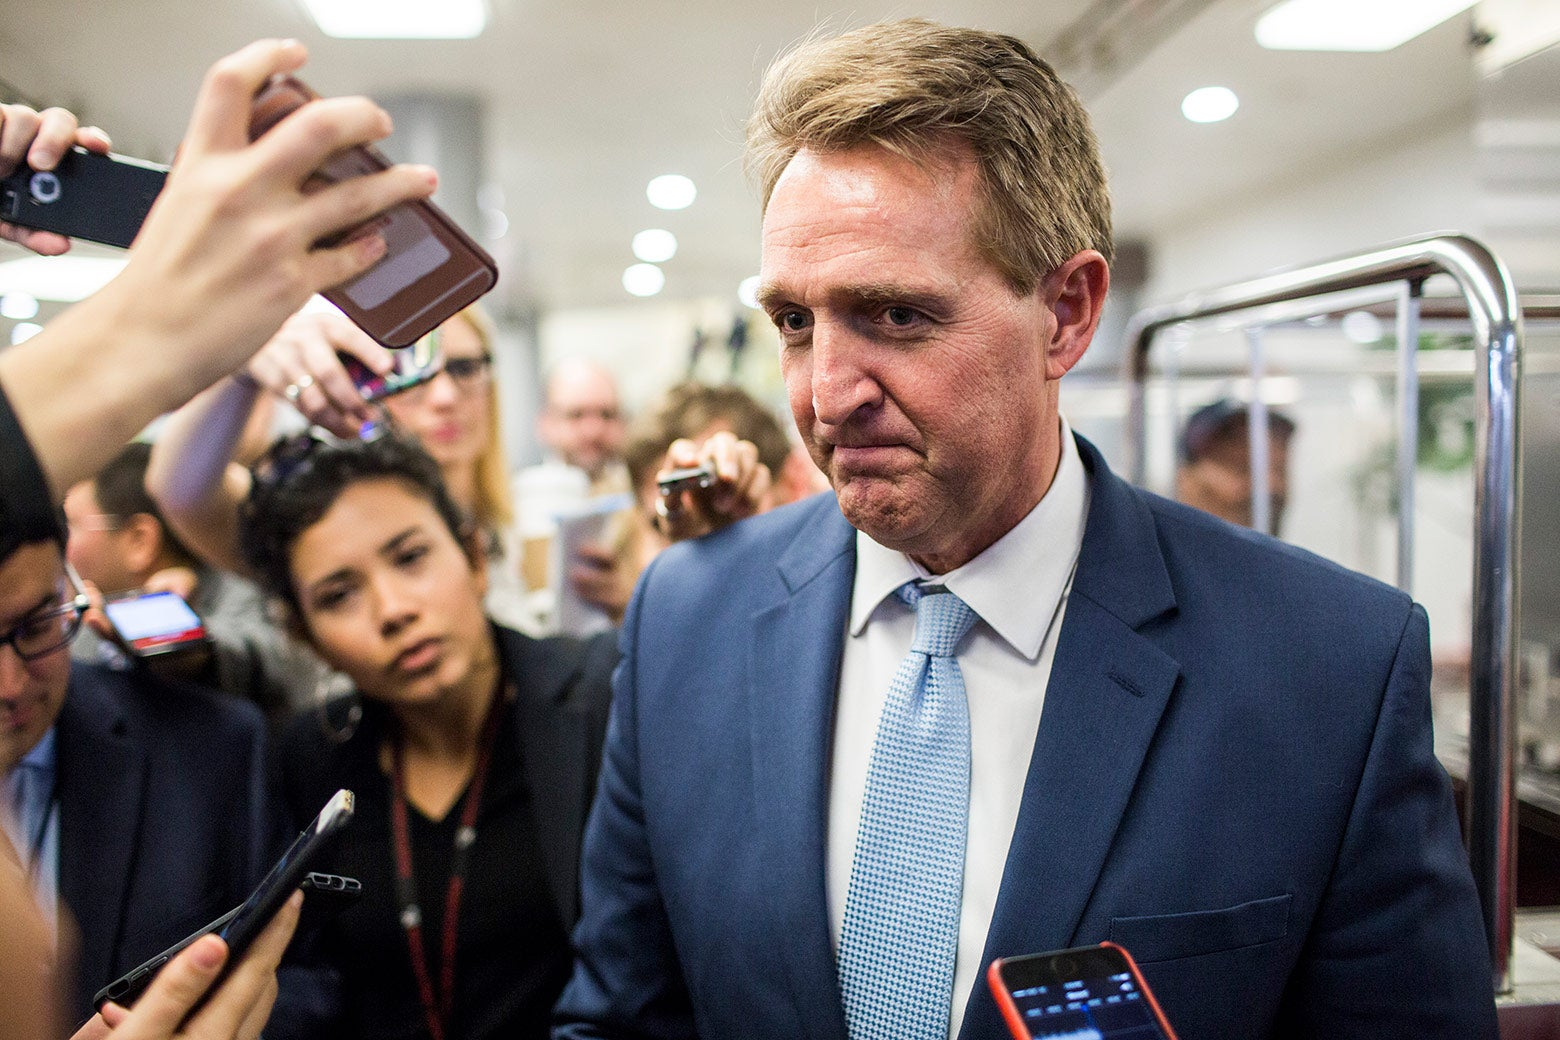 Arizona Sen. Jeff Flake speaks to reporters following a vote on Capitol Hill on Thursday in Washington.